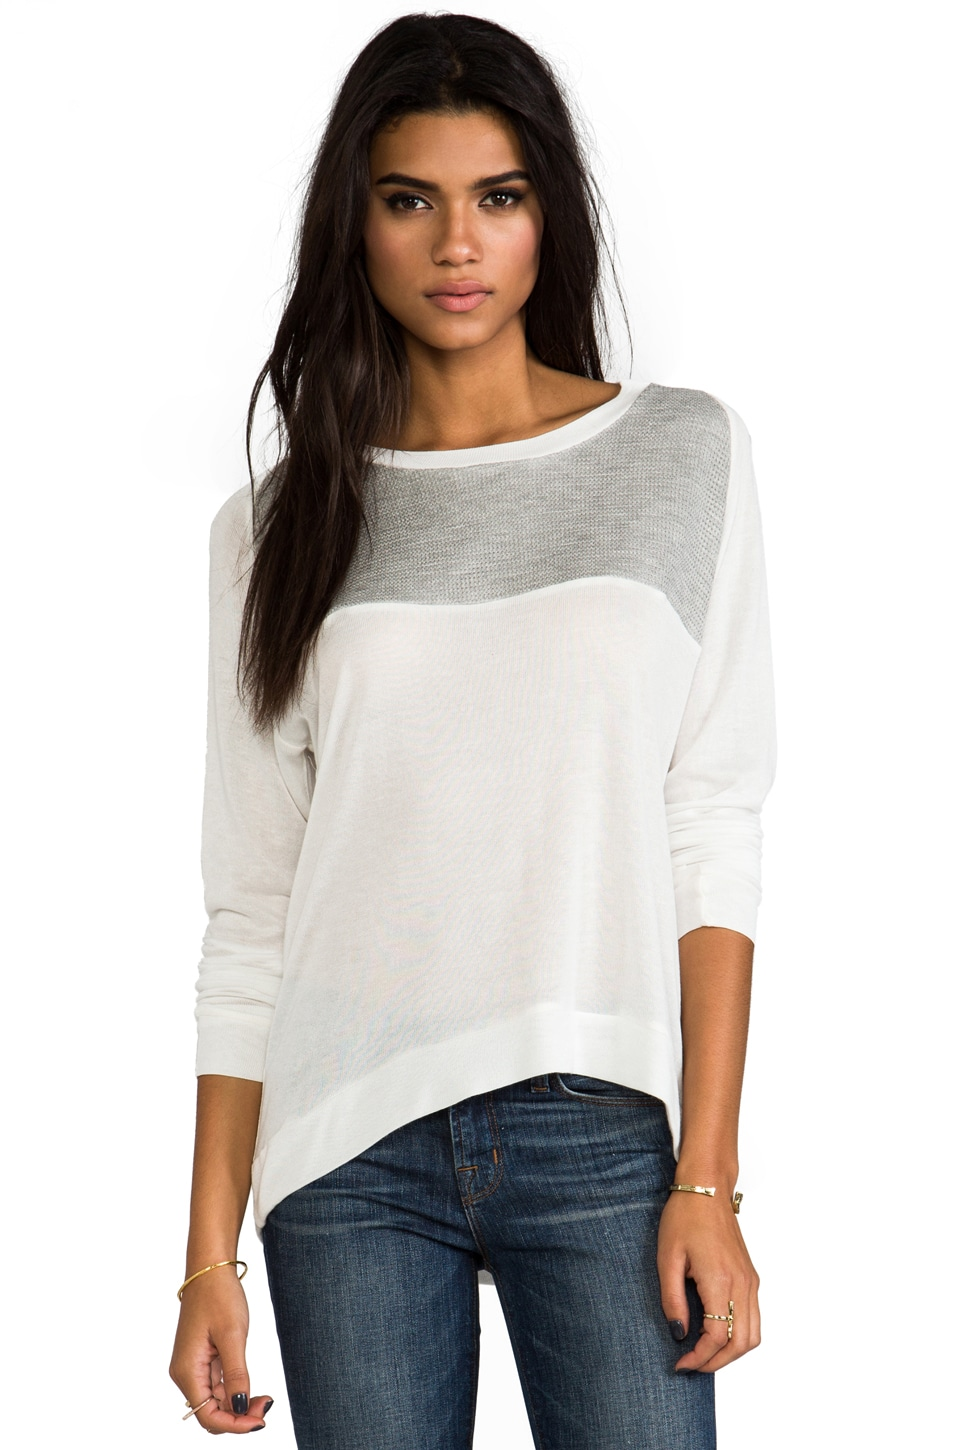 Kain Lamott Sweater in White & Grey Mesh